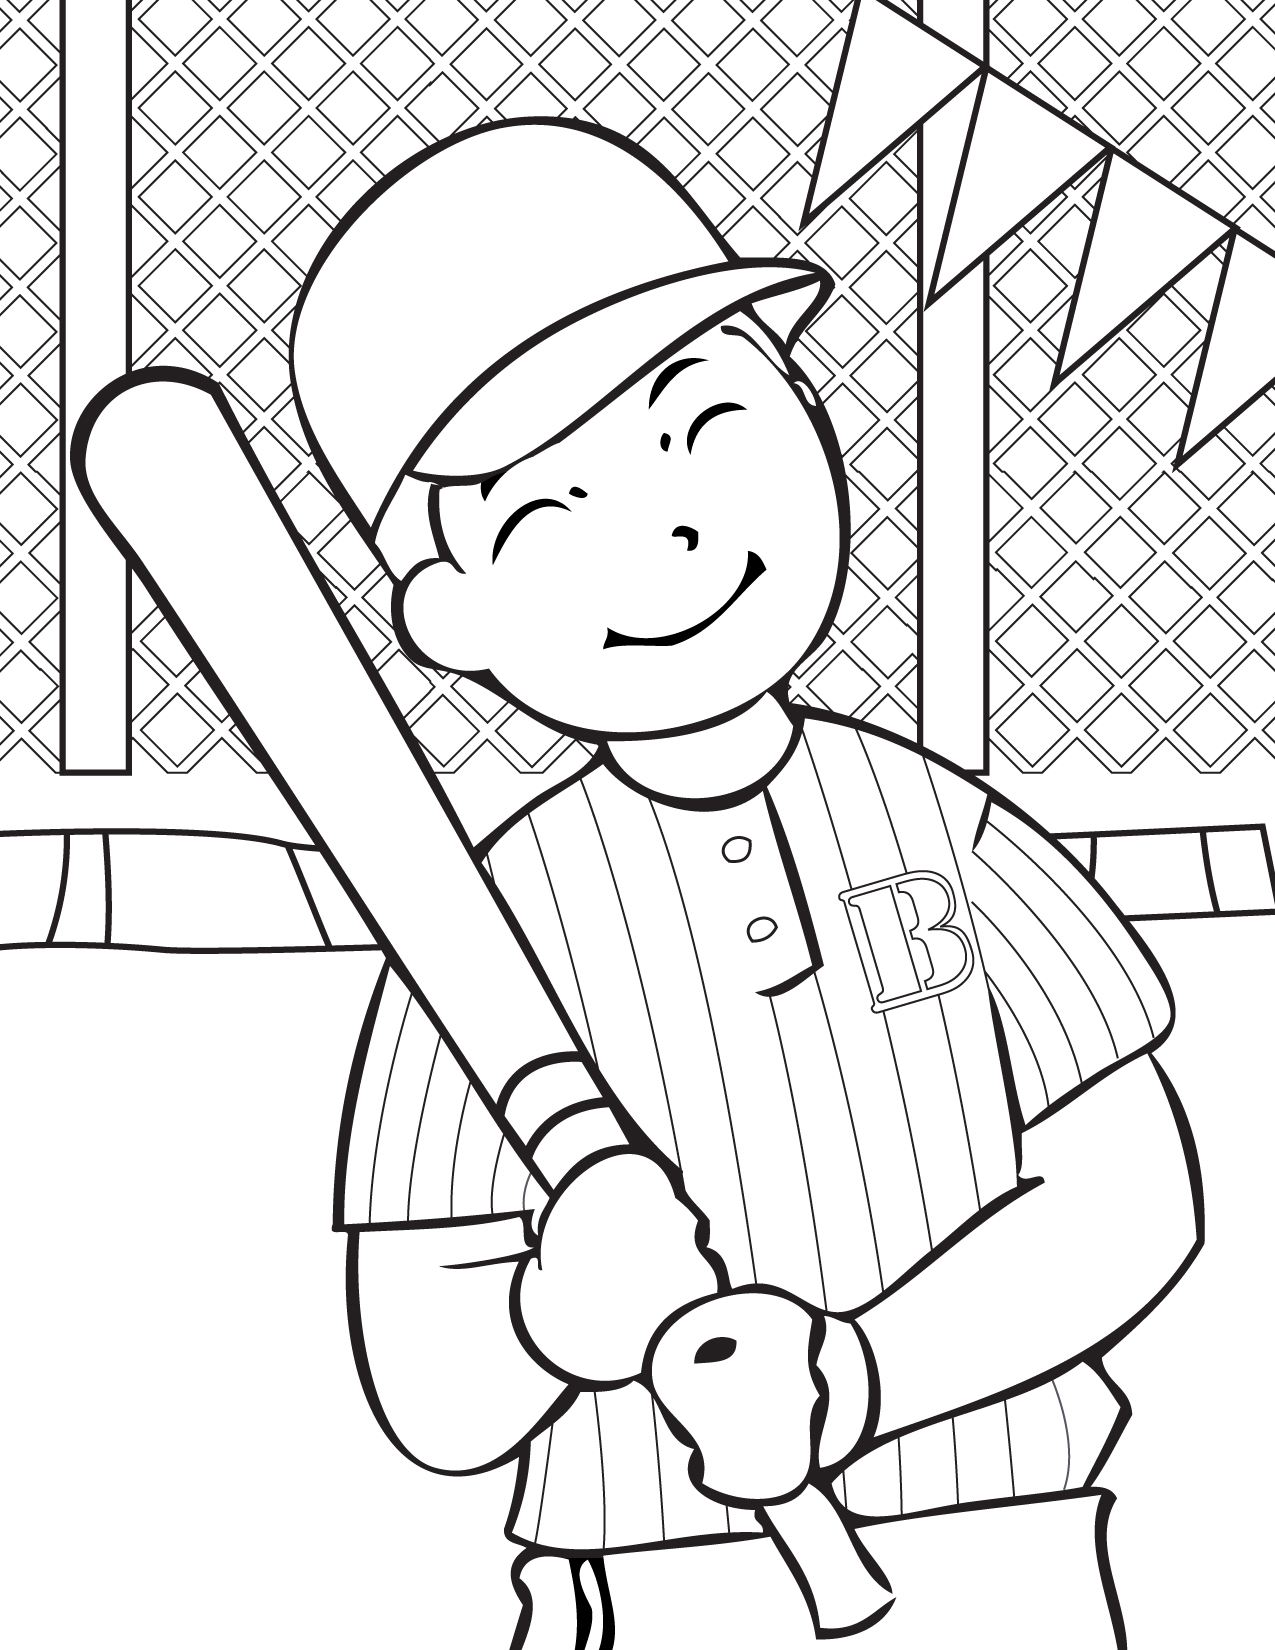 Favorite Sports Coloring Pages - Handipoints